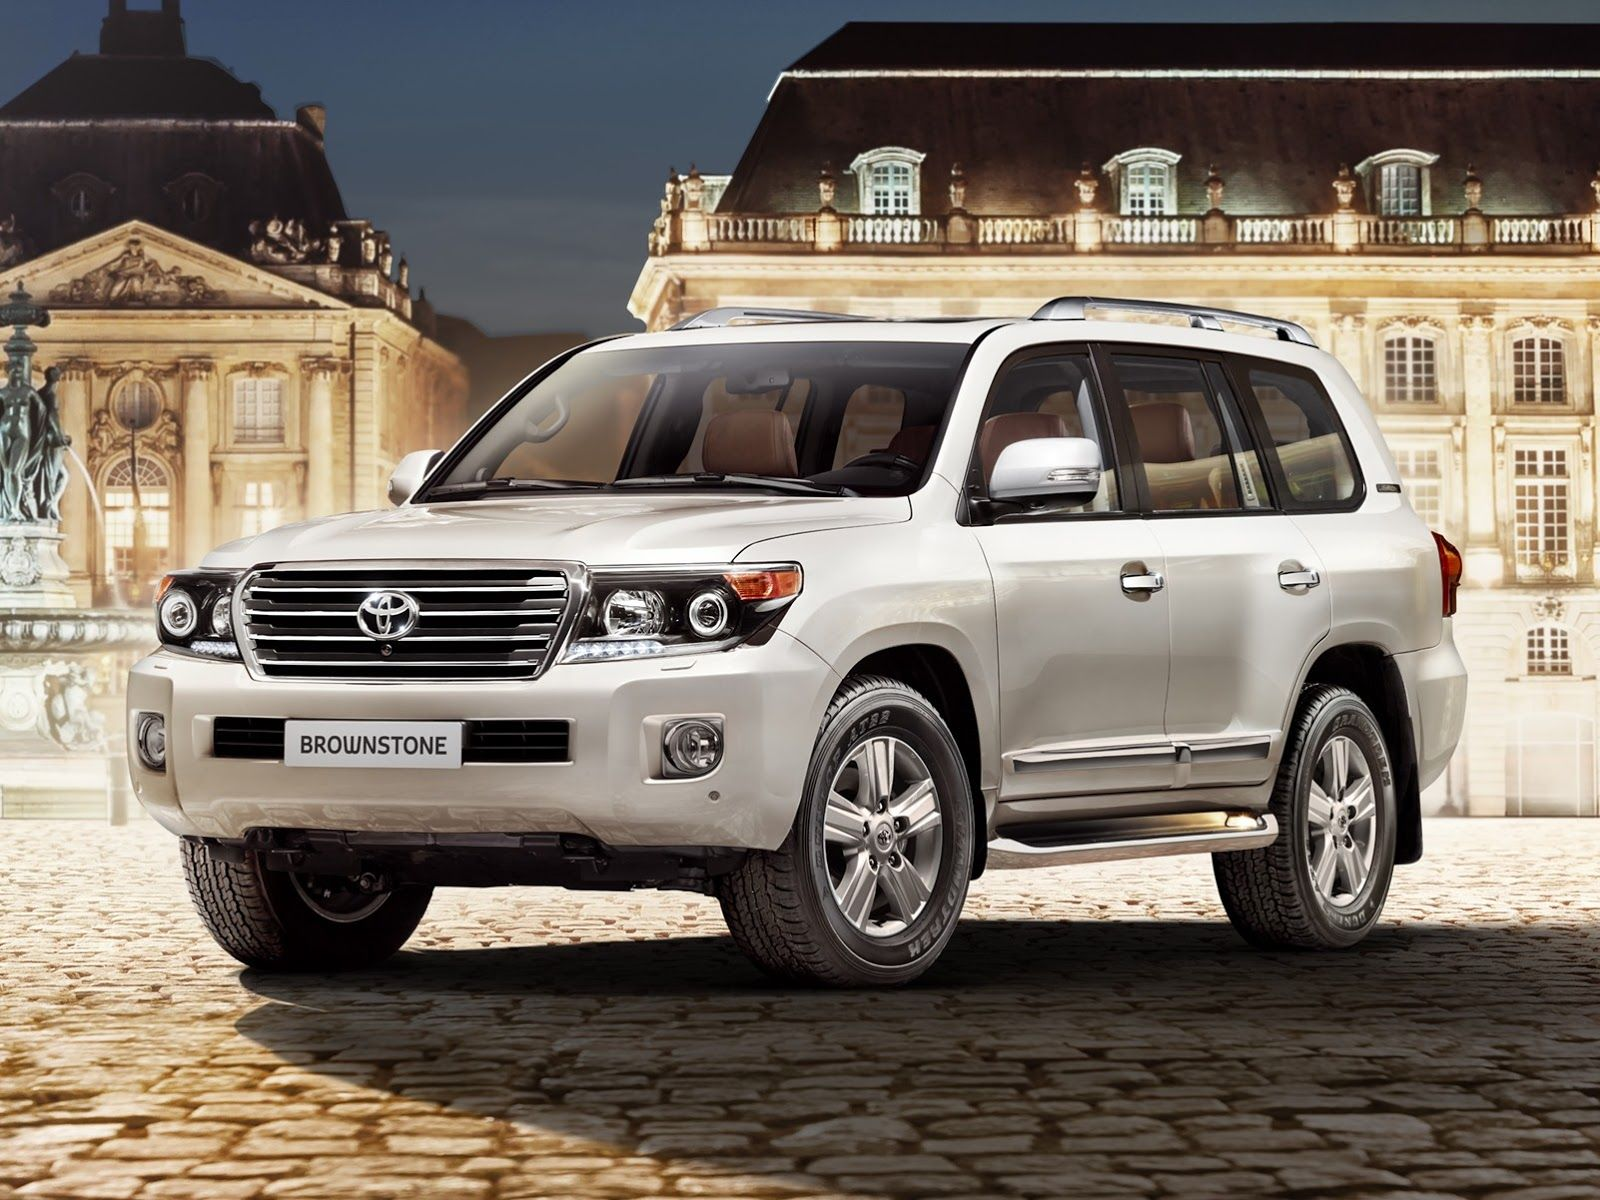 wide and land cruiser us toyota wallpaper pixel car images hd wallpapers